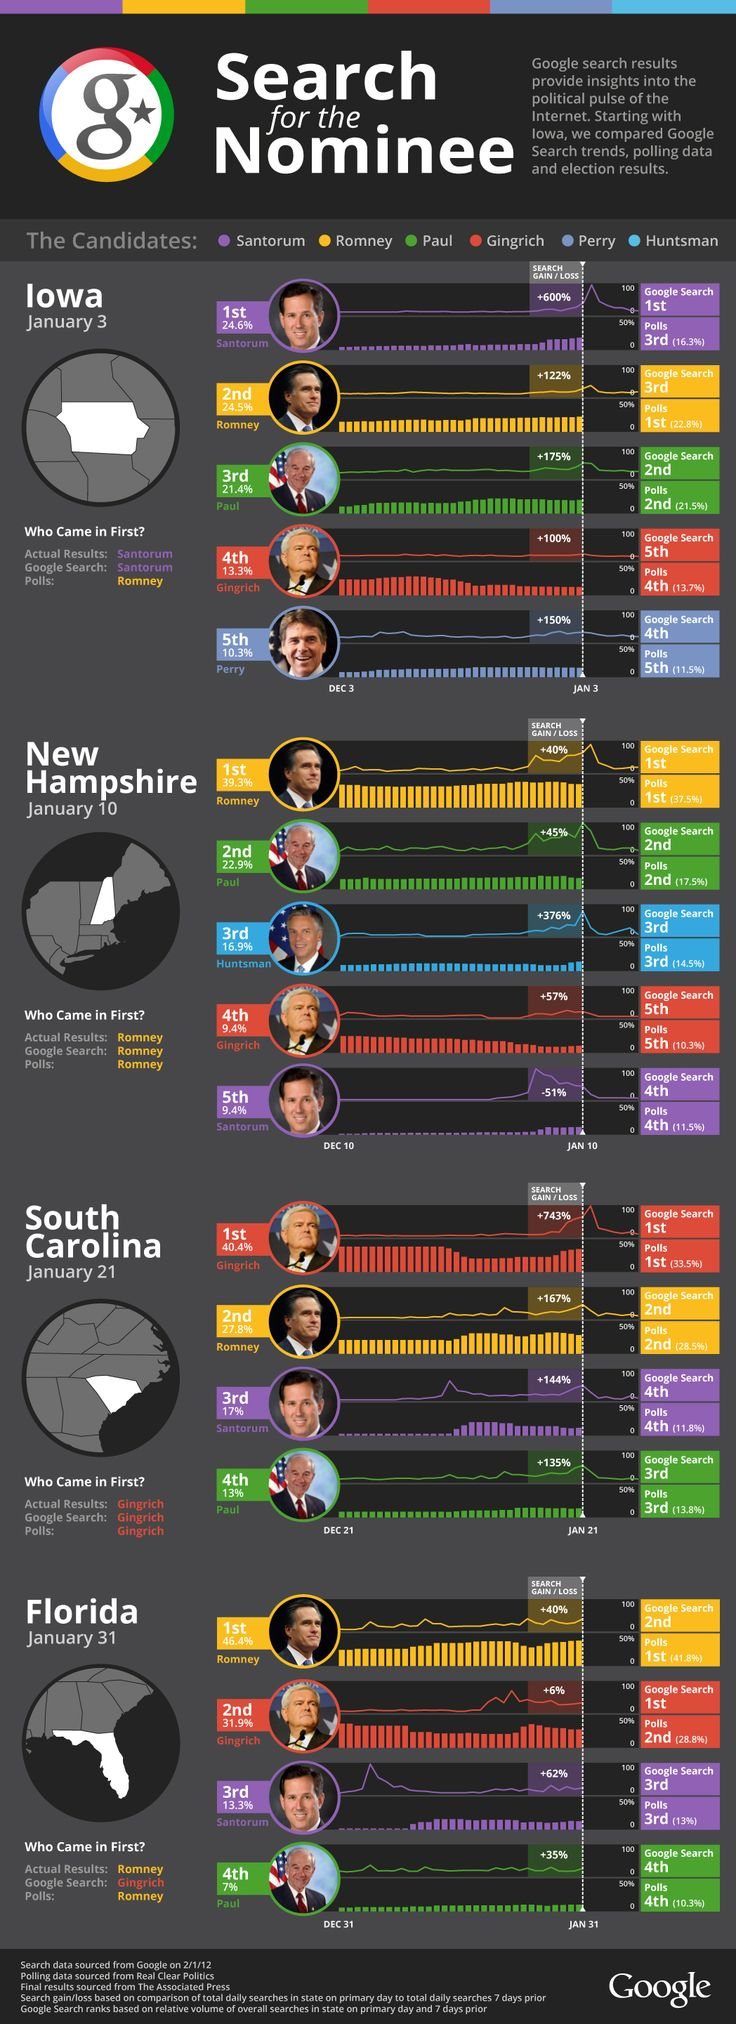 Are Google Search Trends Better Election Predictors Than Polls? [INFOGRAPHIC]